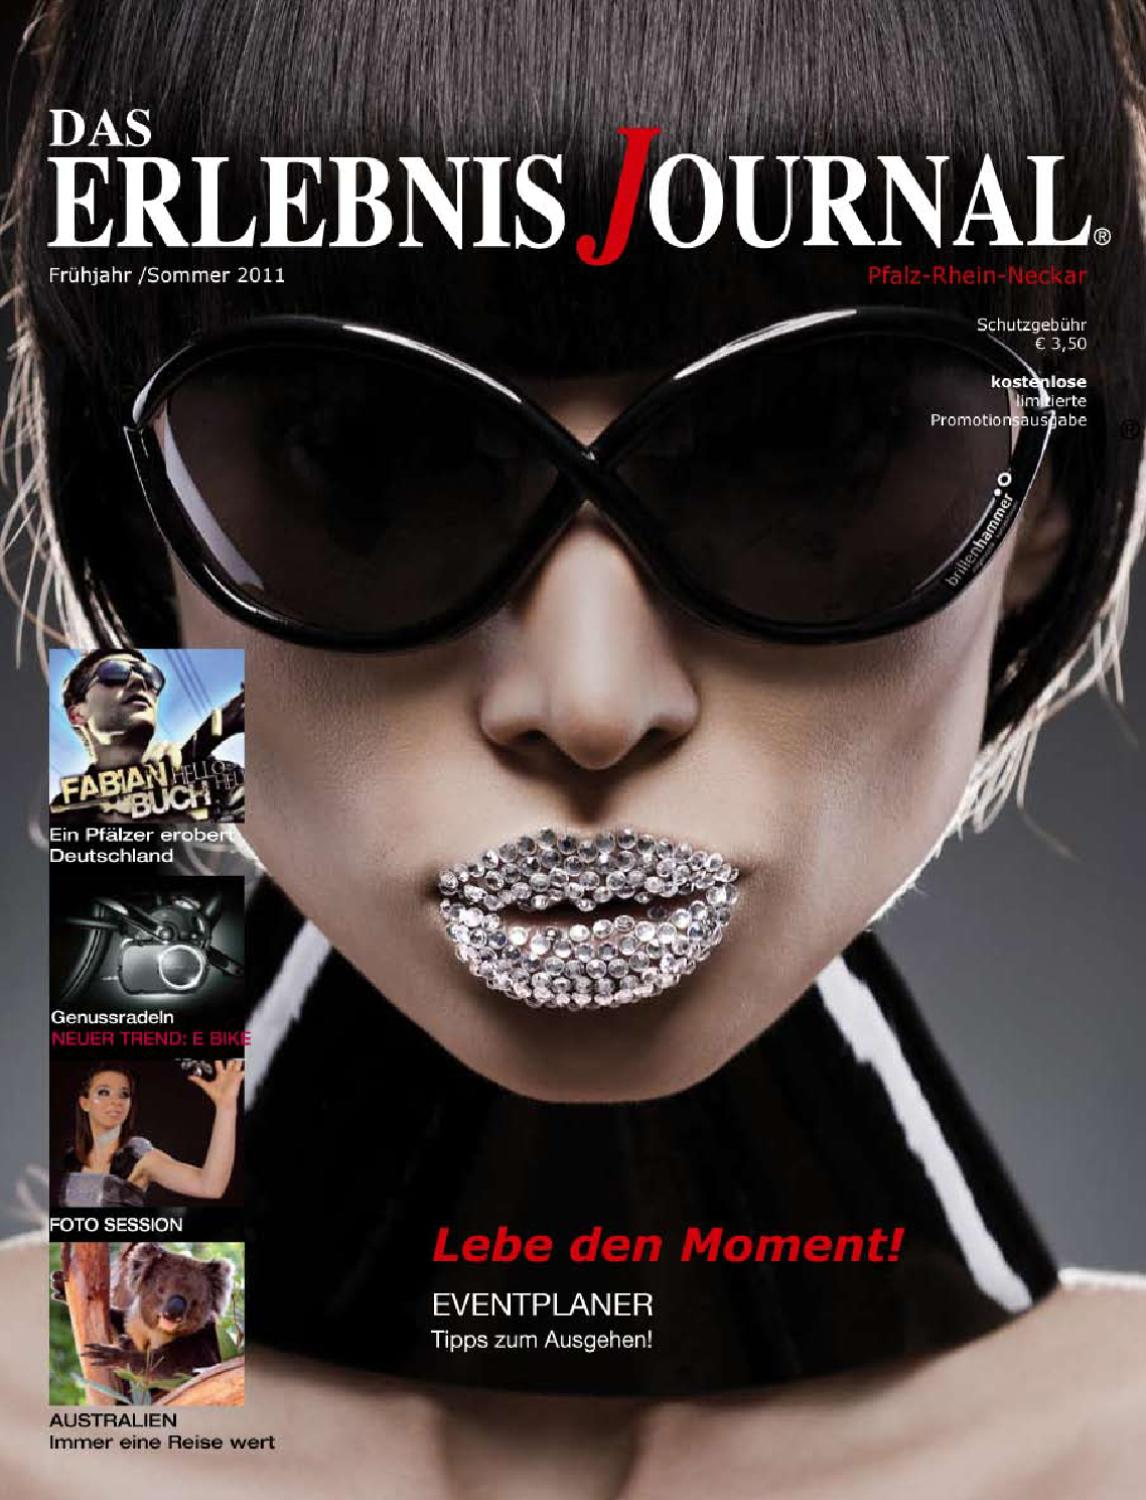 Erlebnis Journal Frühjahr/Sommer 2011 by you to web - issuu